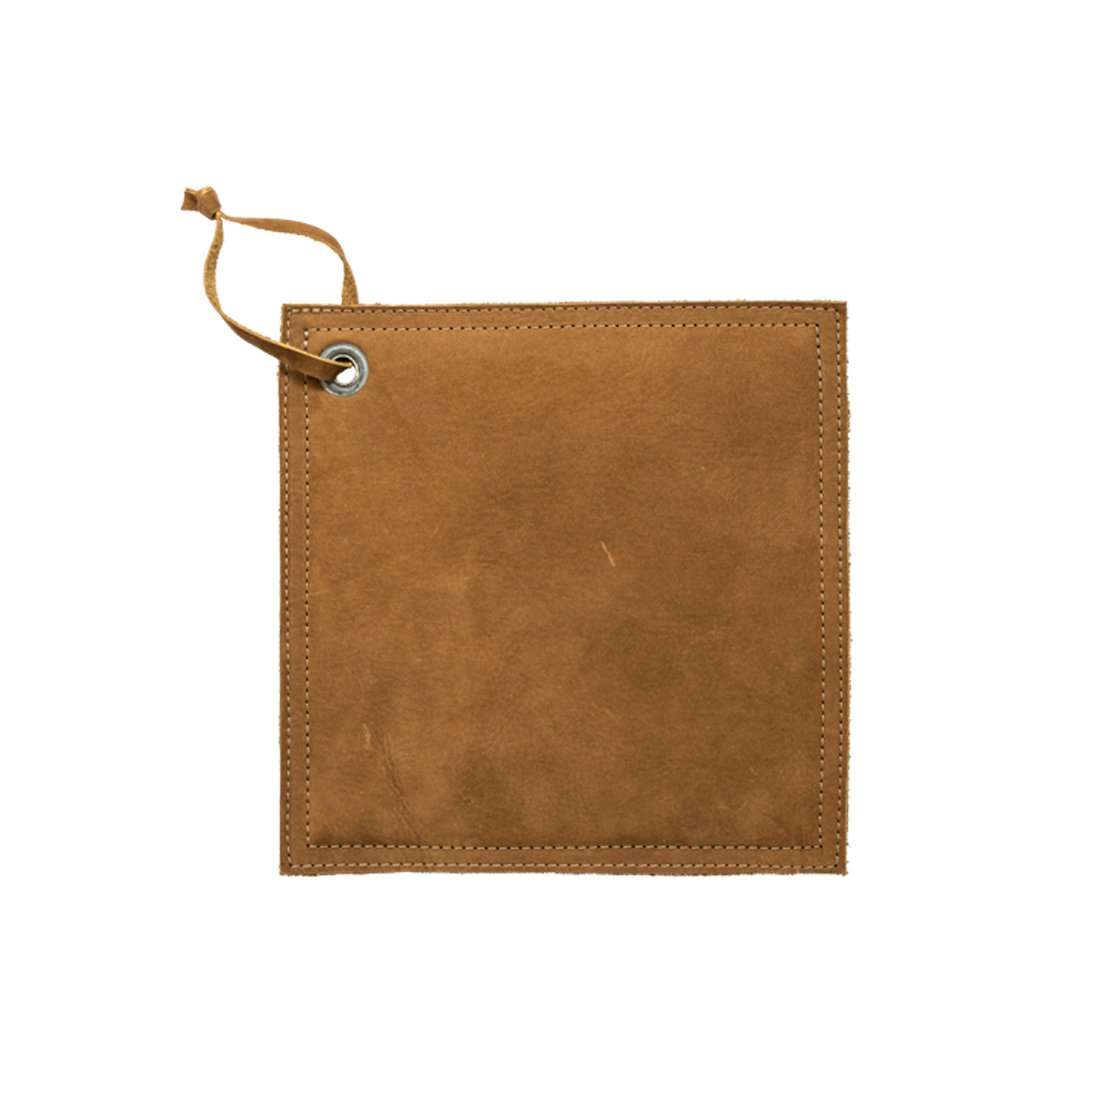 Hide & Drink Leather Hot Pot Pad (Potholder), Double Layered, Double Stitched and Handmade Swayze Suede by Hide & Drink